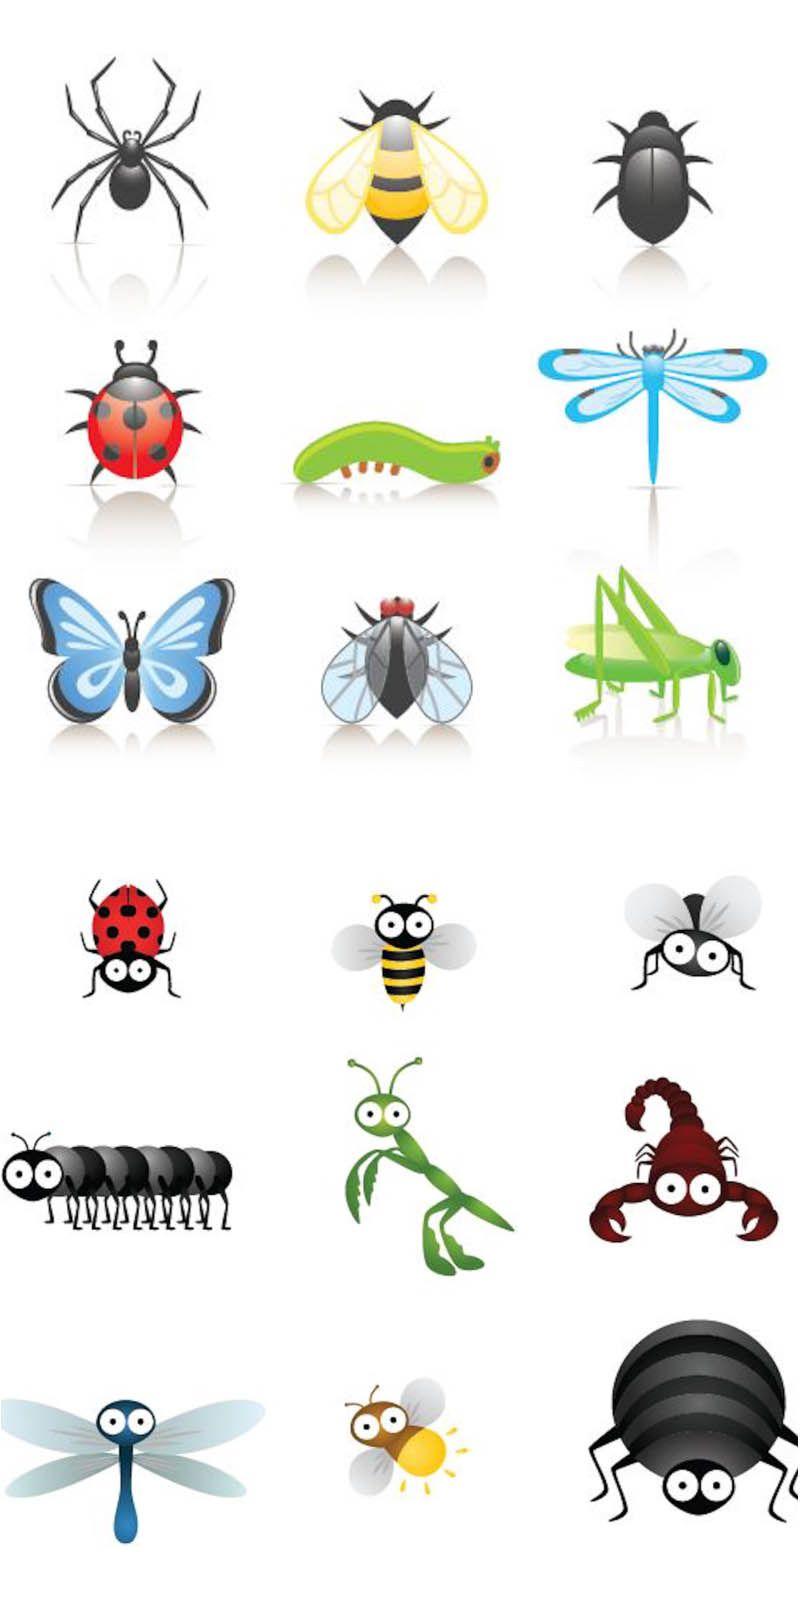 Bugs group clipart banner freeuse Cartoon+Bugs+Clip+Art | Cute cartoon insects vector | Vector ... banner freeuse